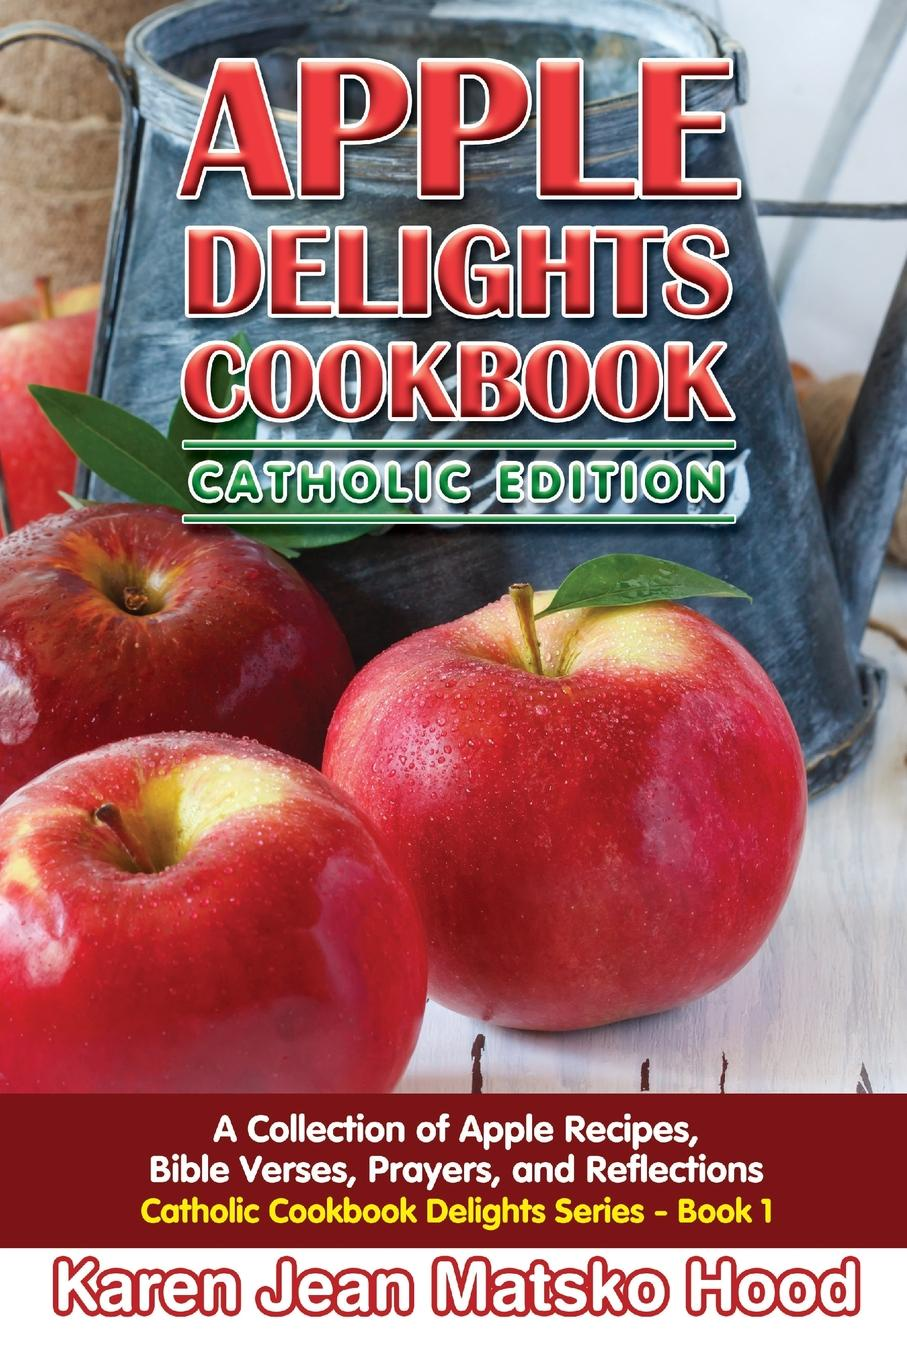 Karen Jean Matsko Hood Apple Delights Cookbook, Catholic Edition. A Collection of Recipes, Bible Verses, Prayers, and Reflections